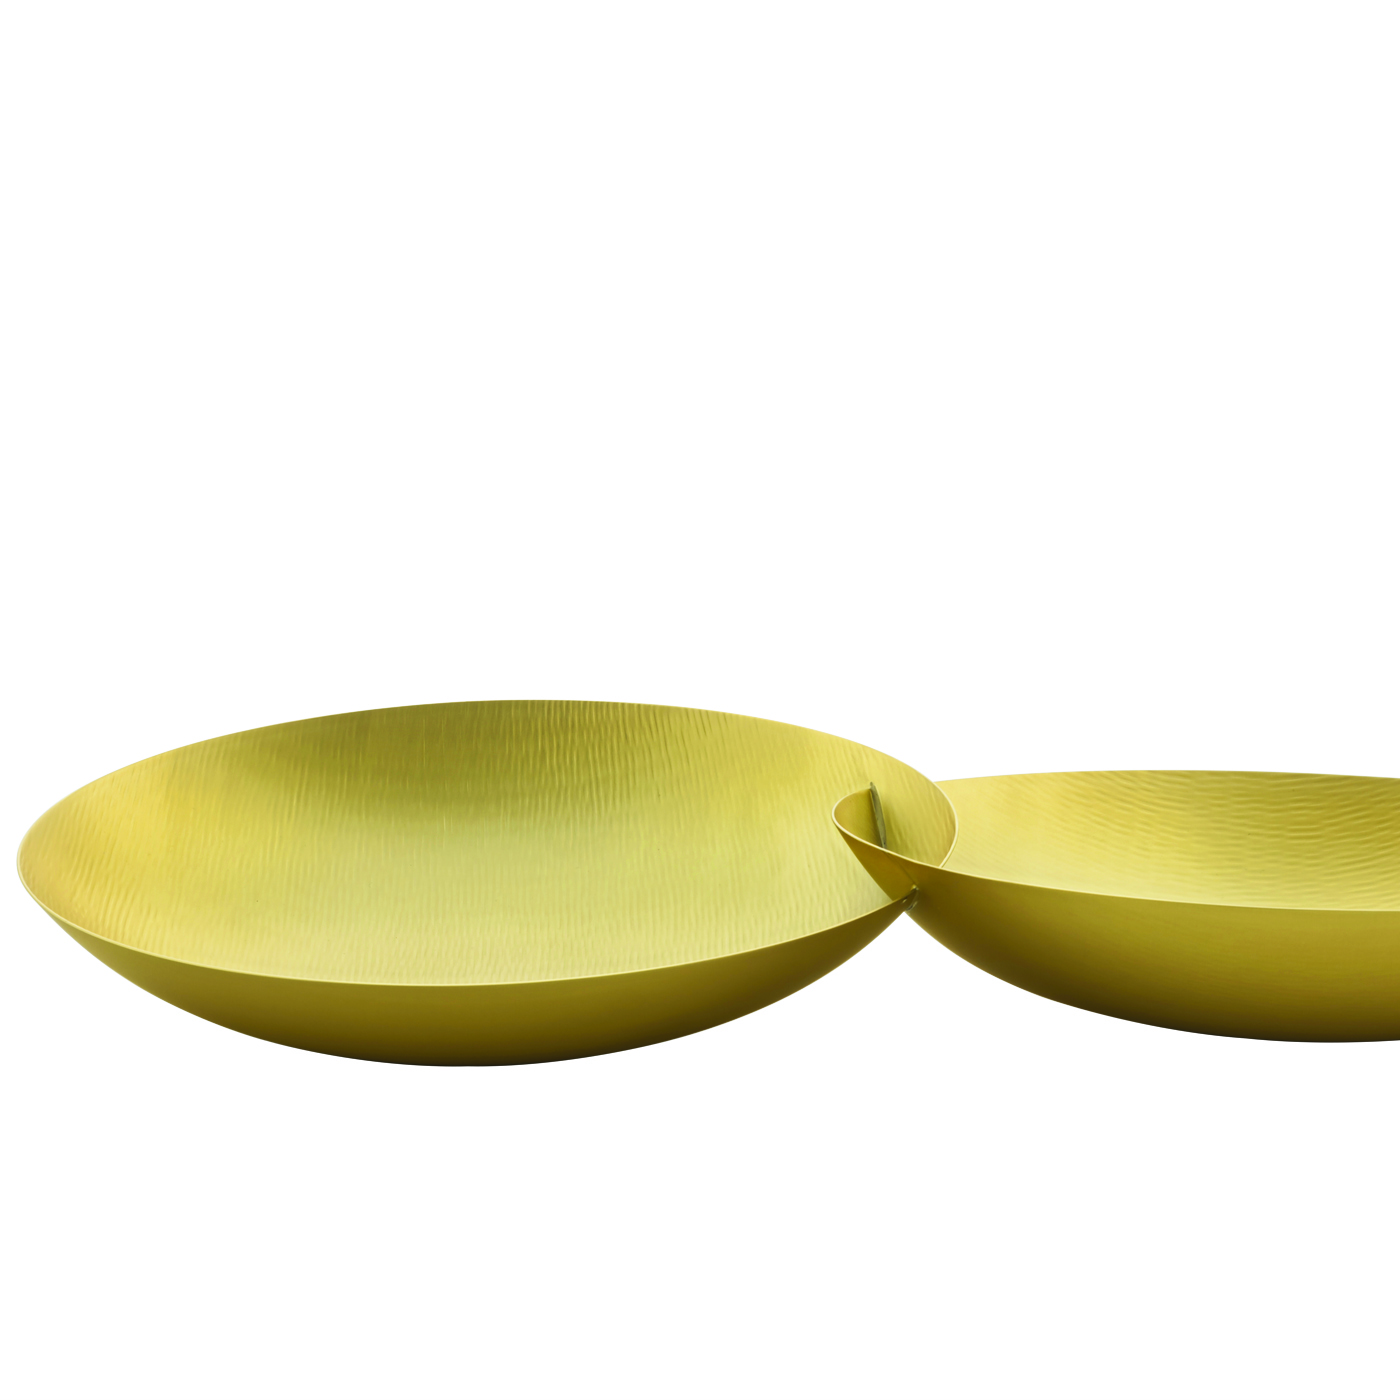 Dellabbondanza Bowl - This exquisite double bowl was made in brass with a satin finish. The elongated oval shape of its two elements that have been joined together is elegant and timeless and symbolically represents the unity of two entities. The internal textures are entirely hand-hammered giving the appearance of tiny ripples forming on the surface and adding dynamism to this sophisticated object that can be a centerpiece or a versatile tray to use in an entryway. | Matter of Stuff